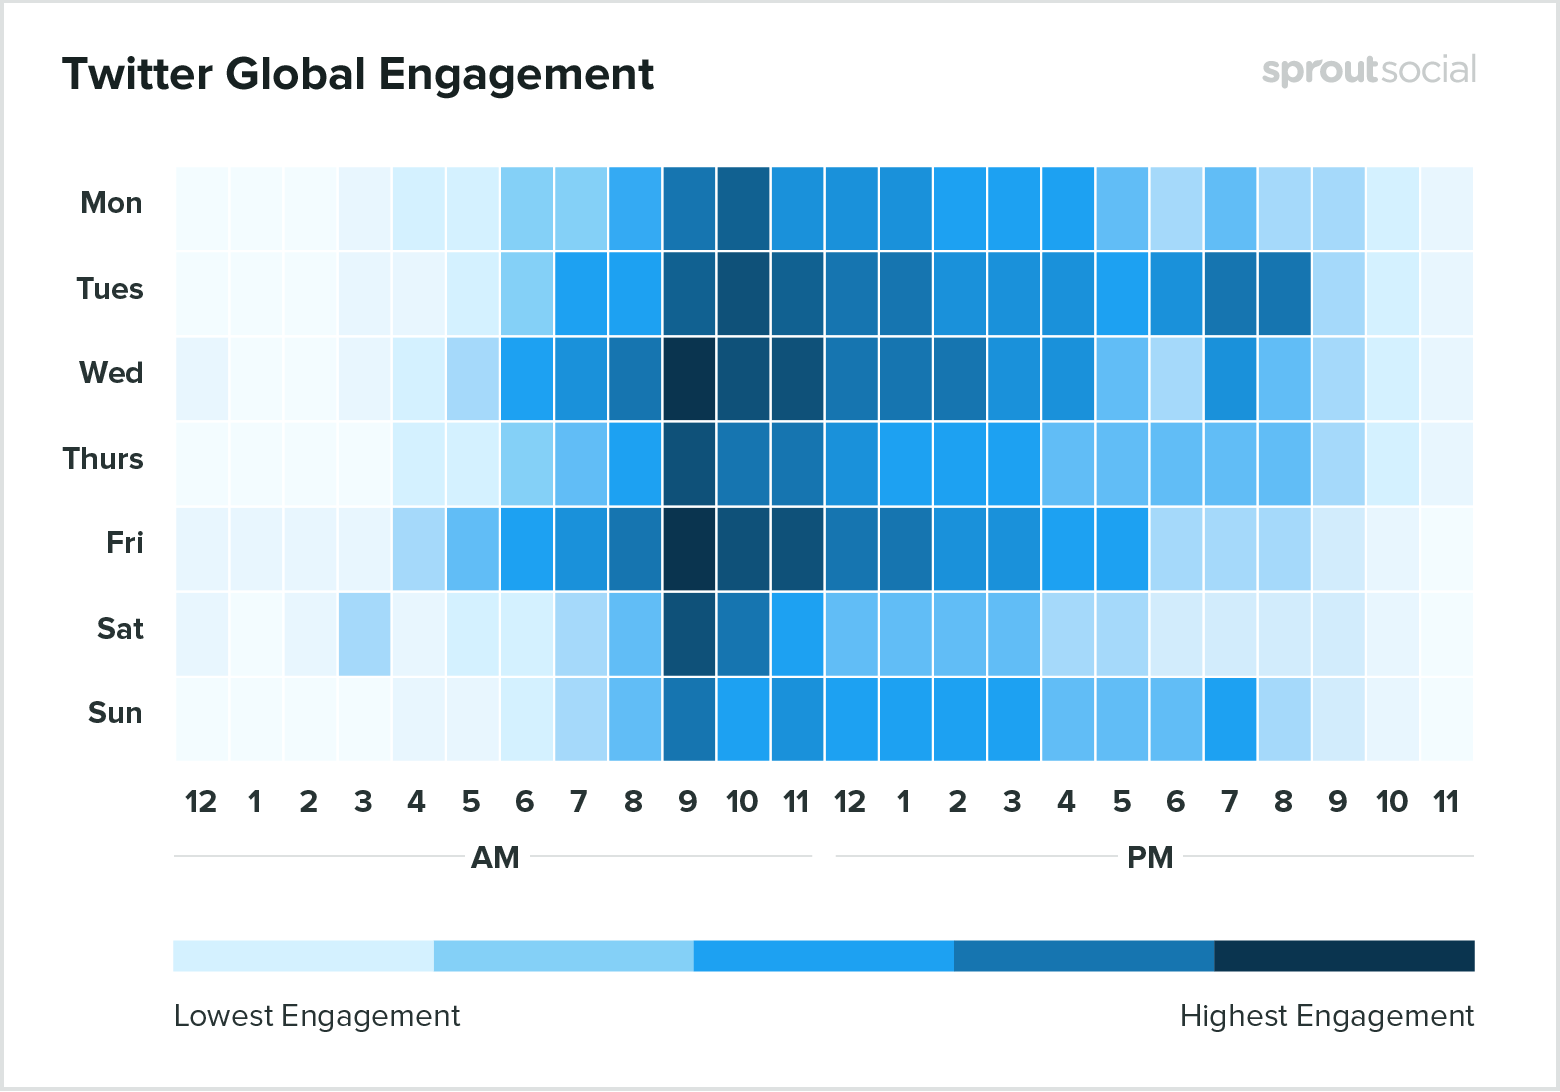 Engagement of a Tweet